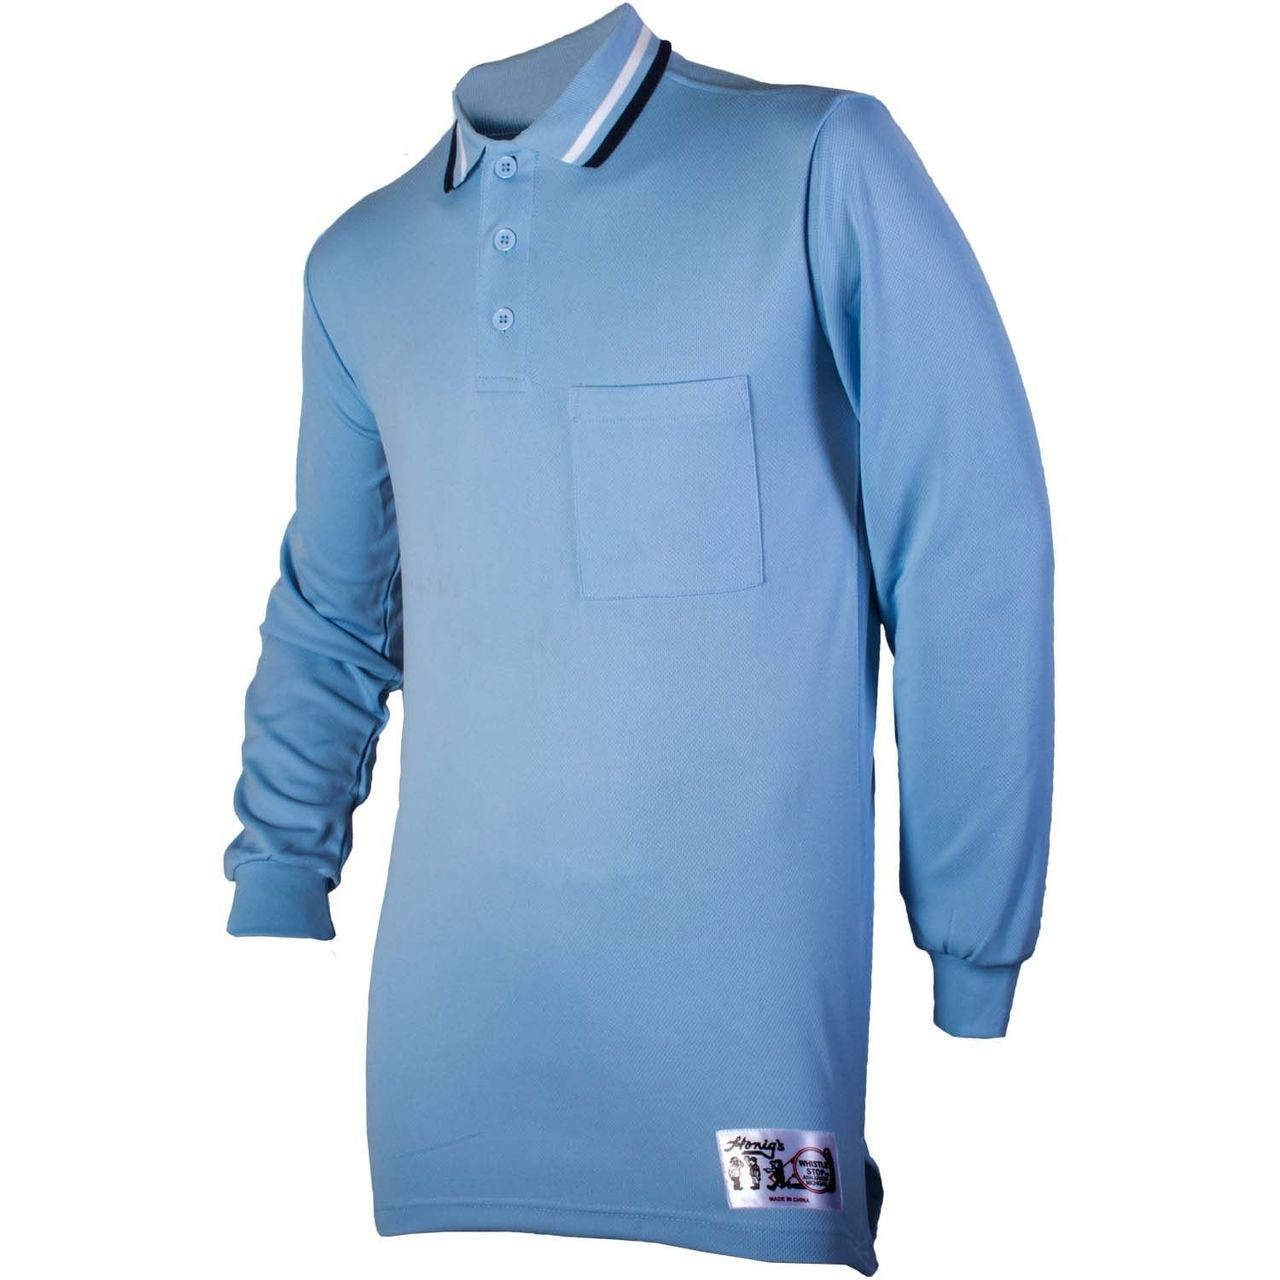 Honig's Powder Blue Long Sleeve Umpire Shirt